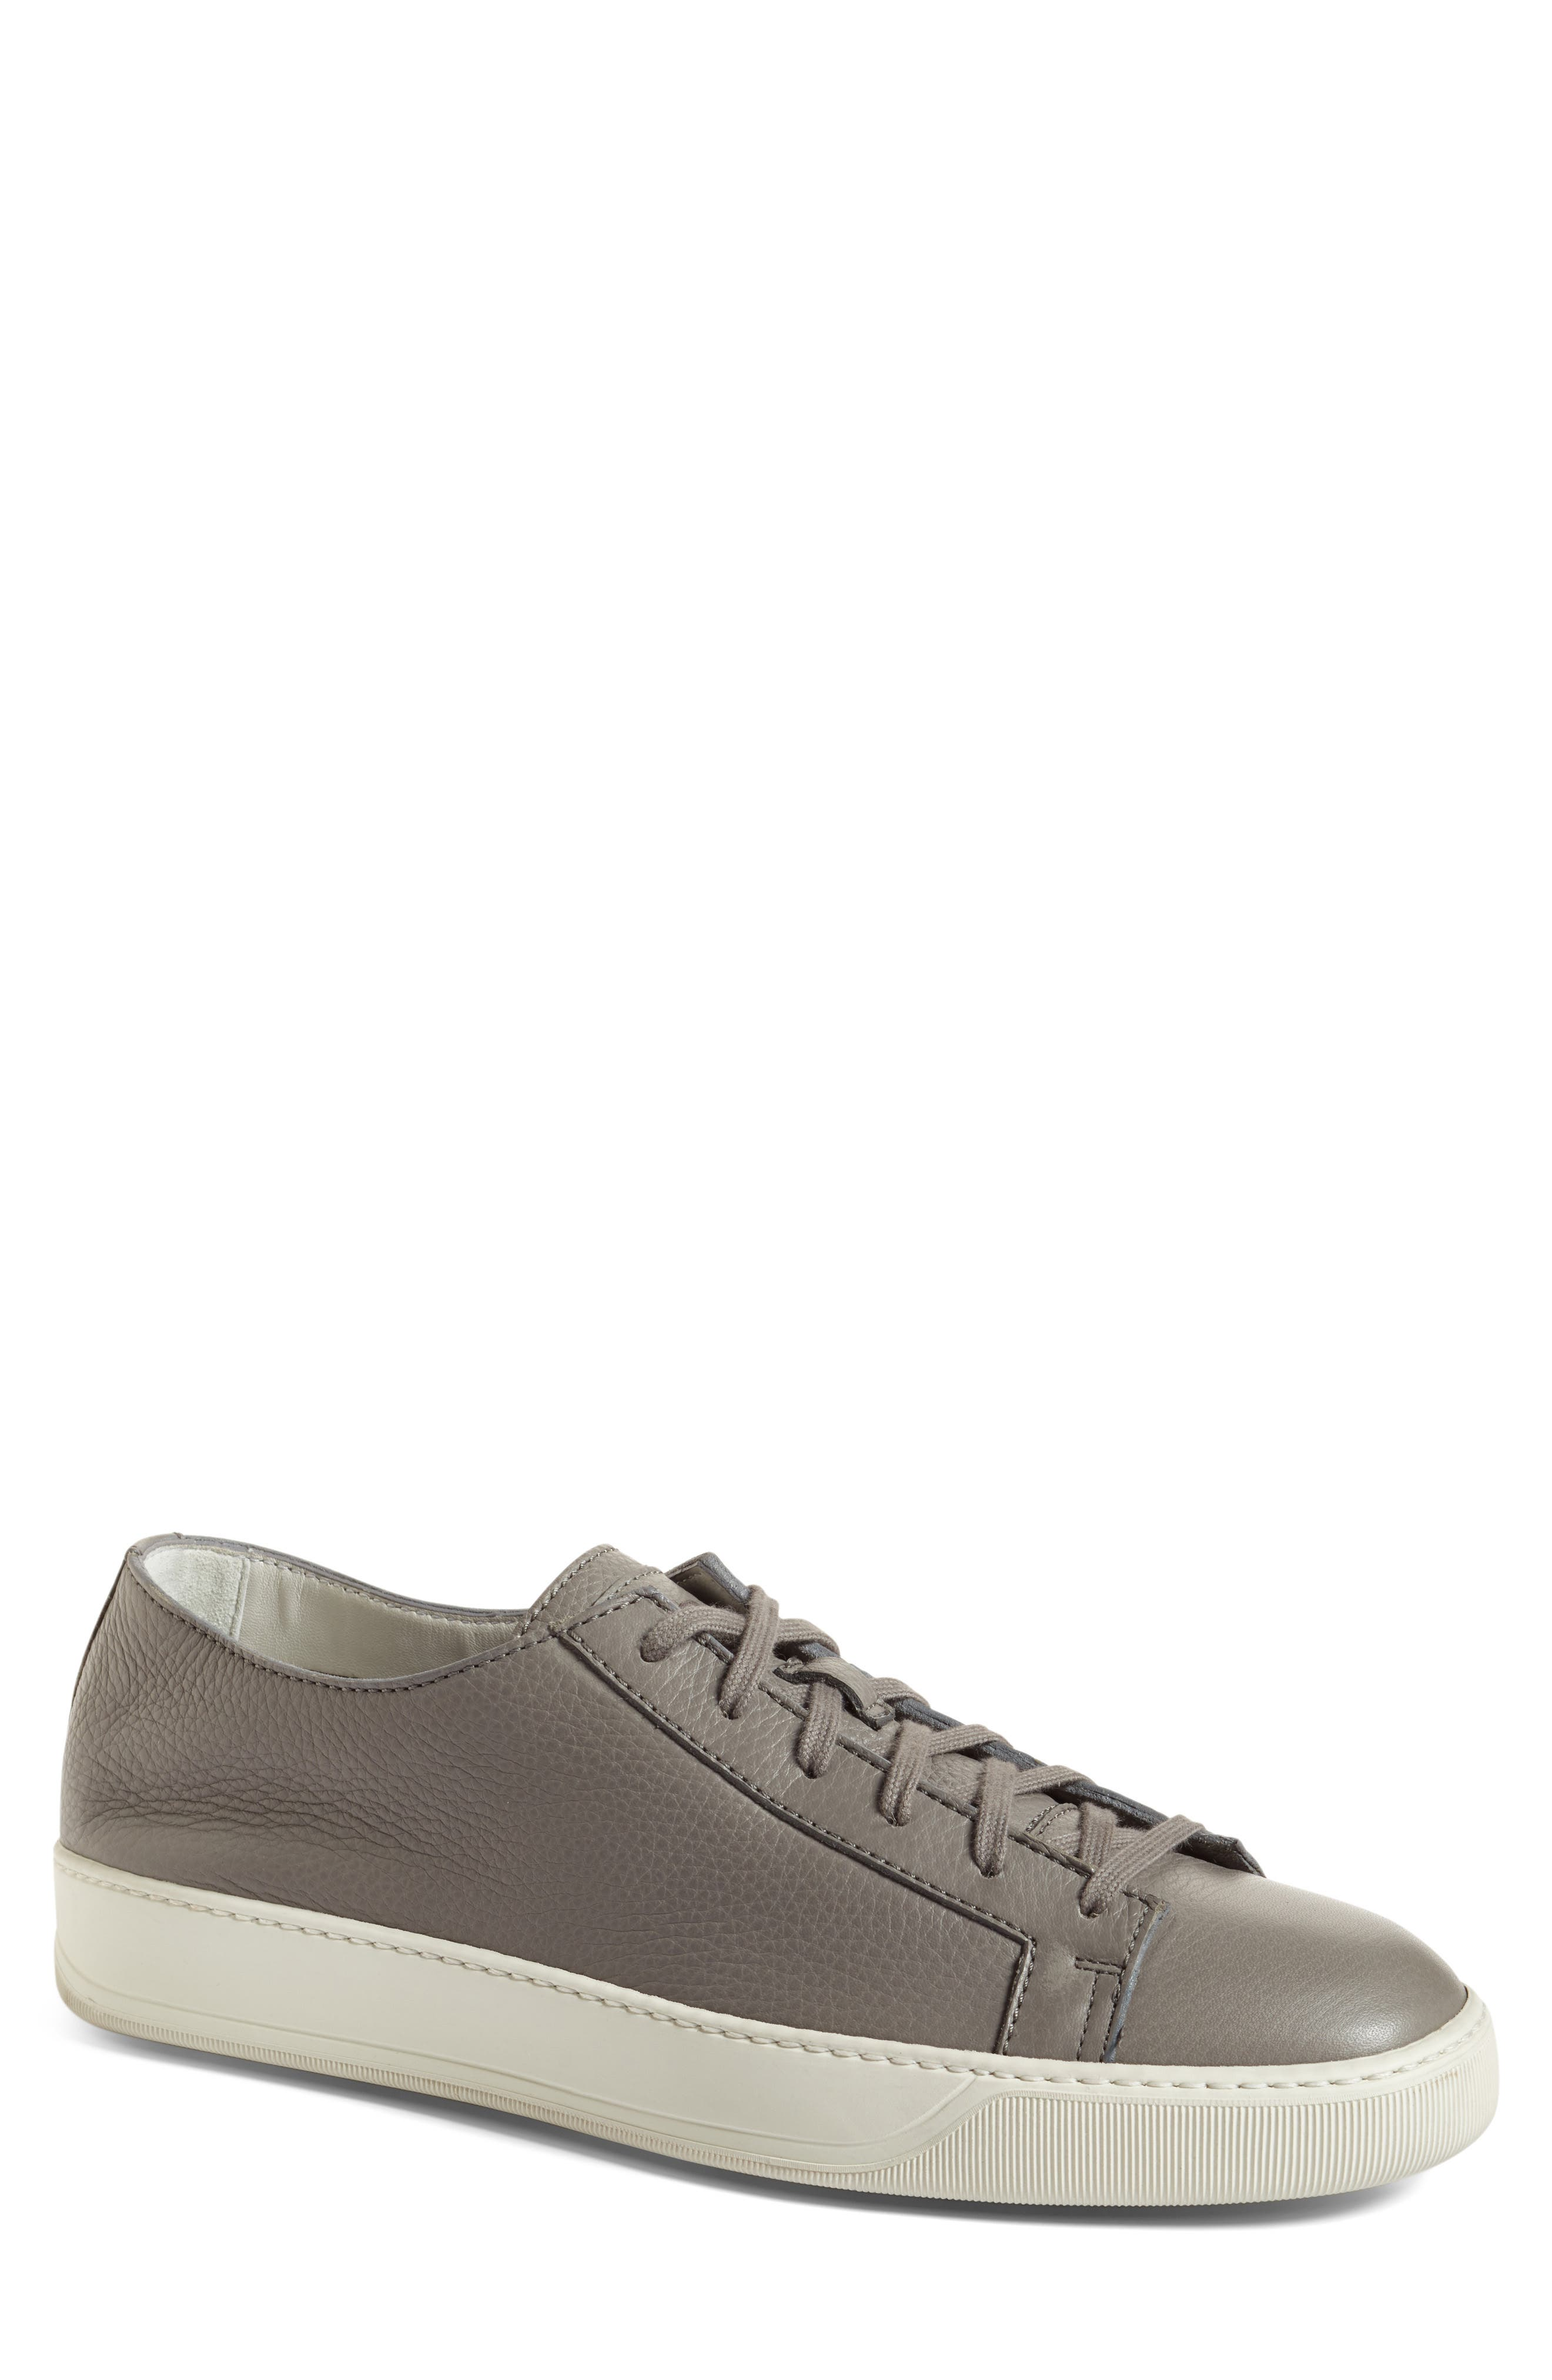 Cleanic Sneaker,                             Main thumbnail 1, color,                             Grey Leather